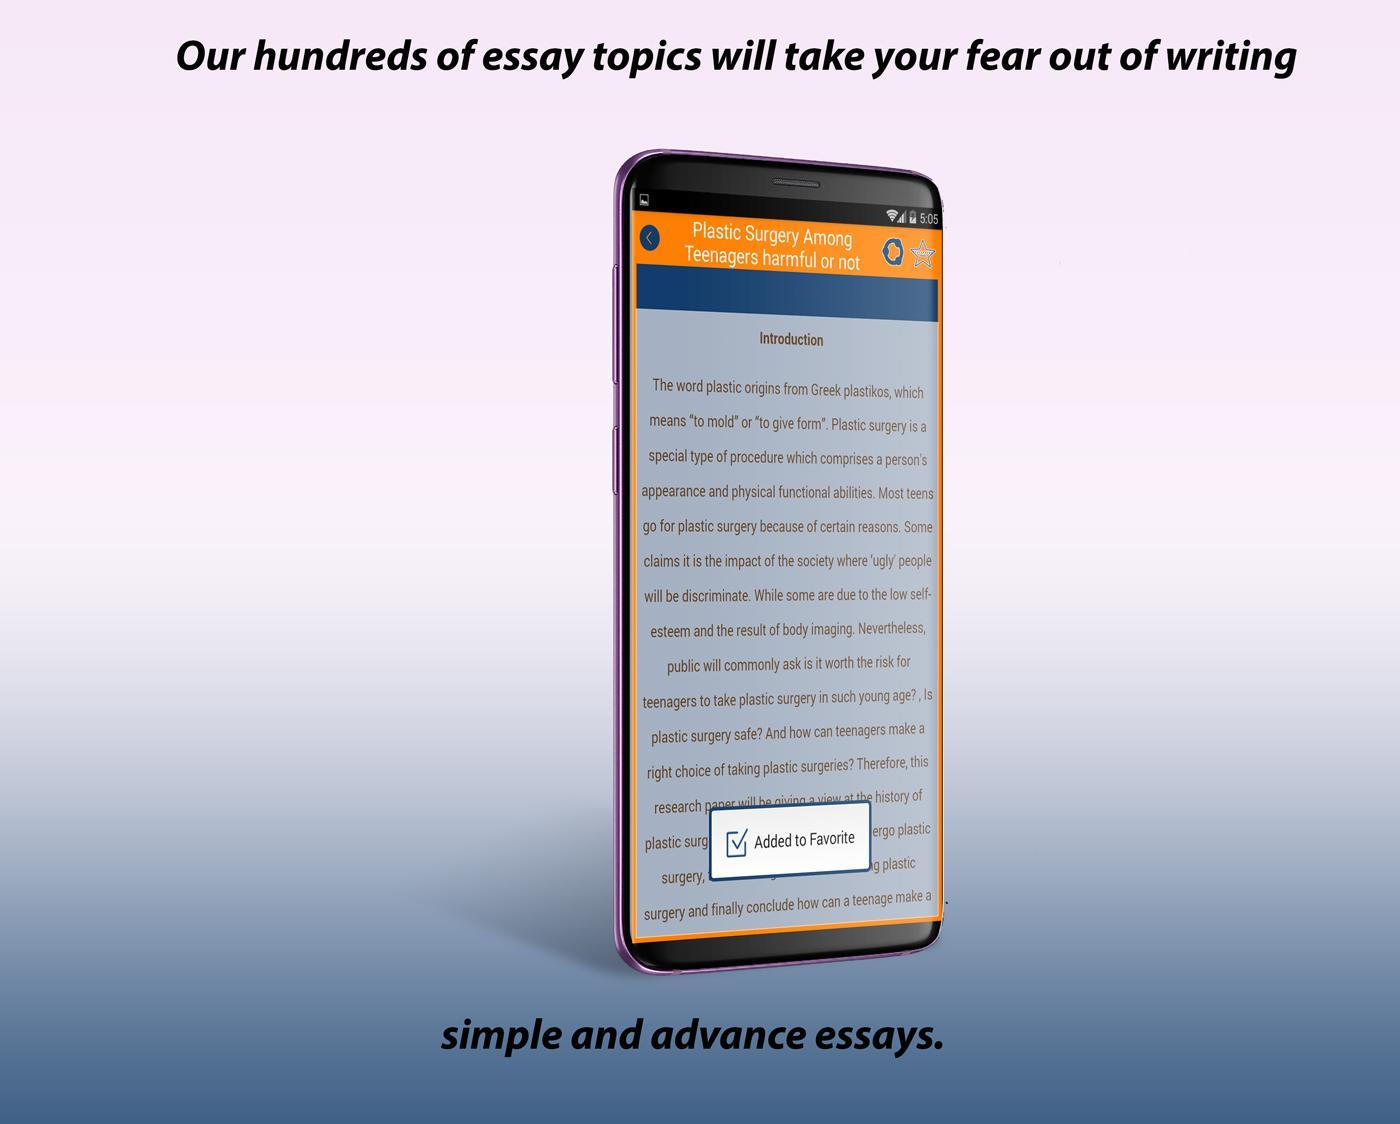 Essays About High School  A Modest Proposal Ideas For Essays also English Essay Books Best English Essays For Android  Apk Download Term Papers And Essays